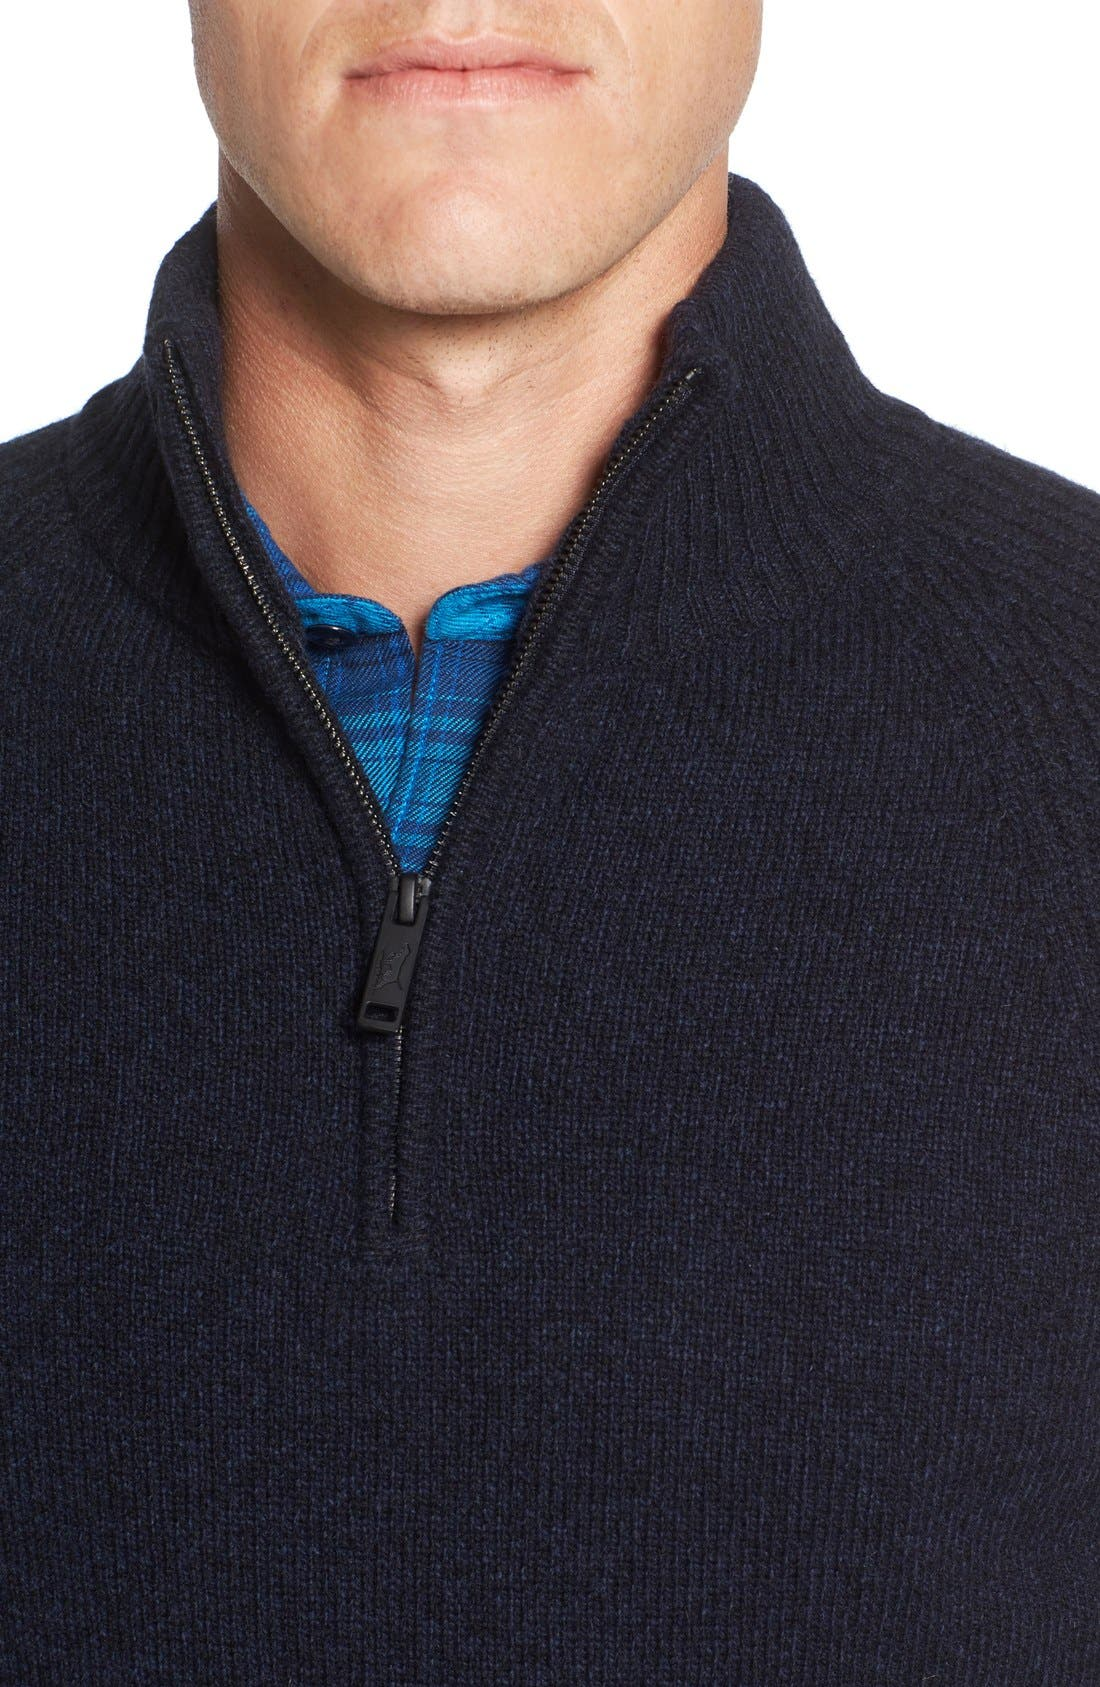 Stredwick Lambswool Sweater,                             Alternate thumbnail 20, color,